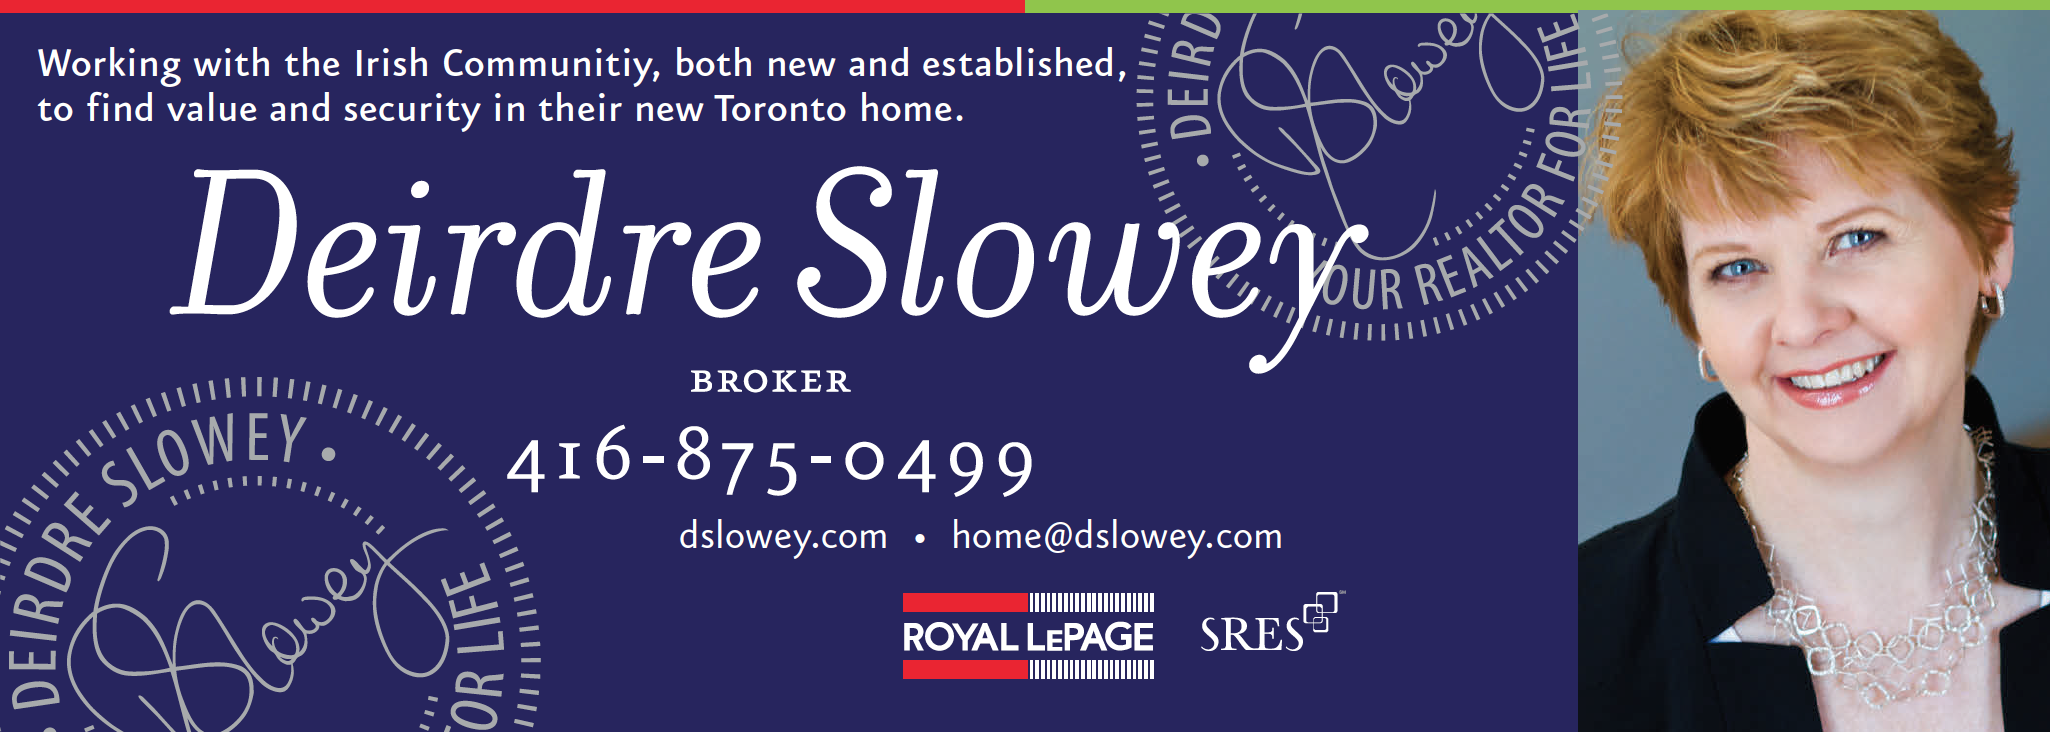 real estate, toronto, canada, agent, broker